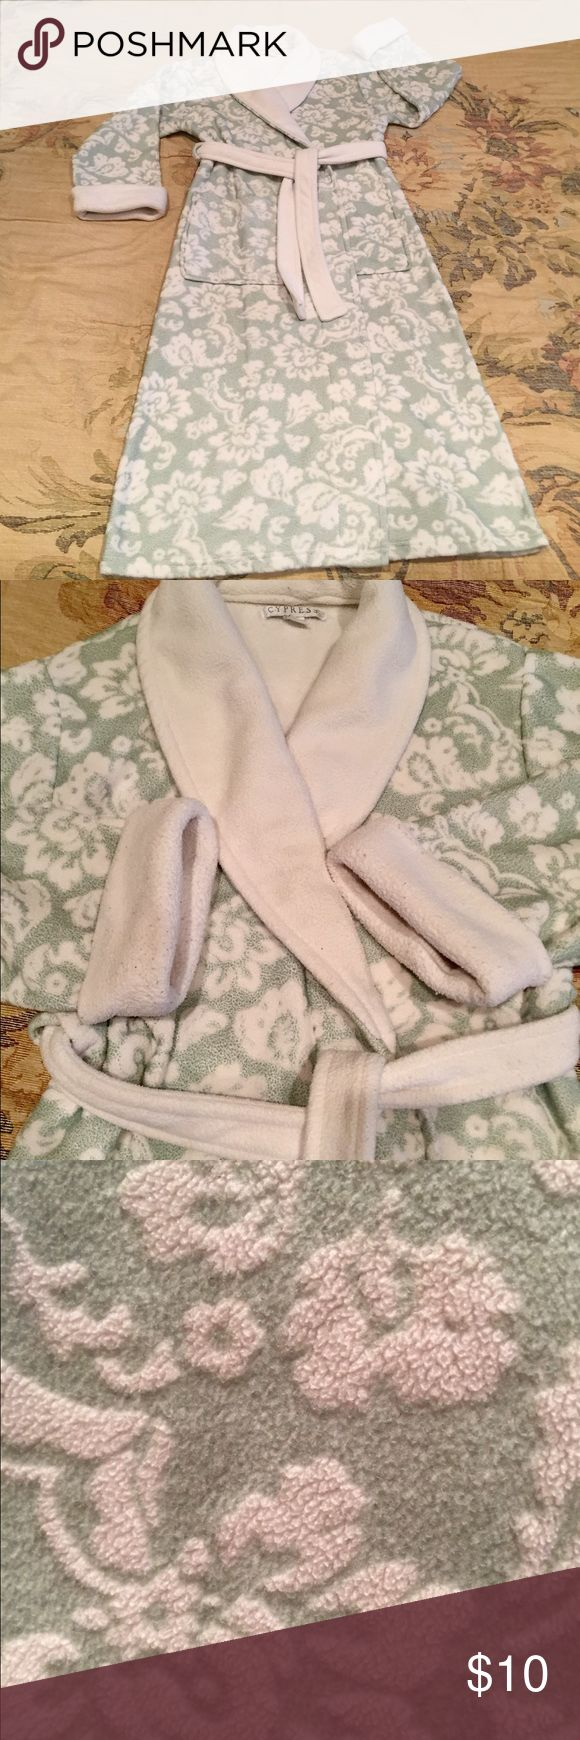 Cypress Bathrobe I received a new robe for Christmas so this one has to go. Lots of love left in this robe. Soft, comfy and warm. Some piling mostly around cuffs of sleeves. I'm 5'7 and it hits me mid calf and just above my wrists. Bundle for additional discount. Cypress Intimates & Sleepwear Robes